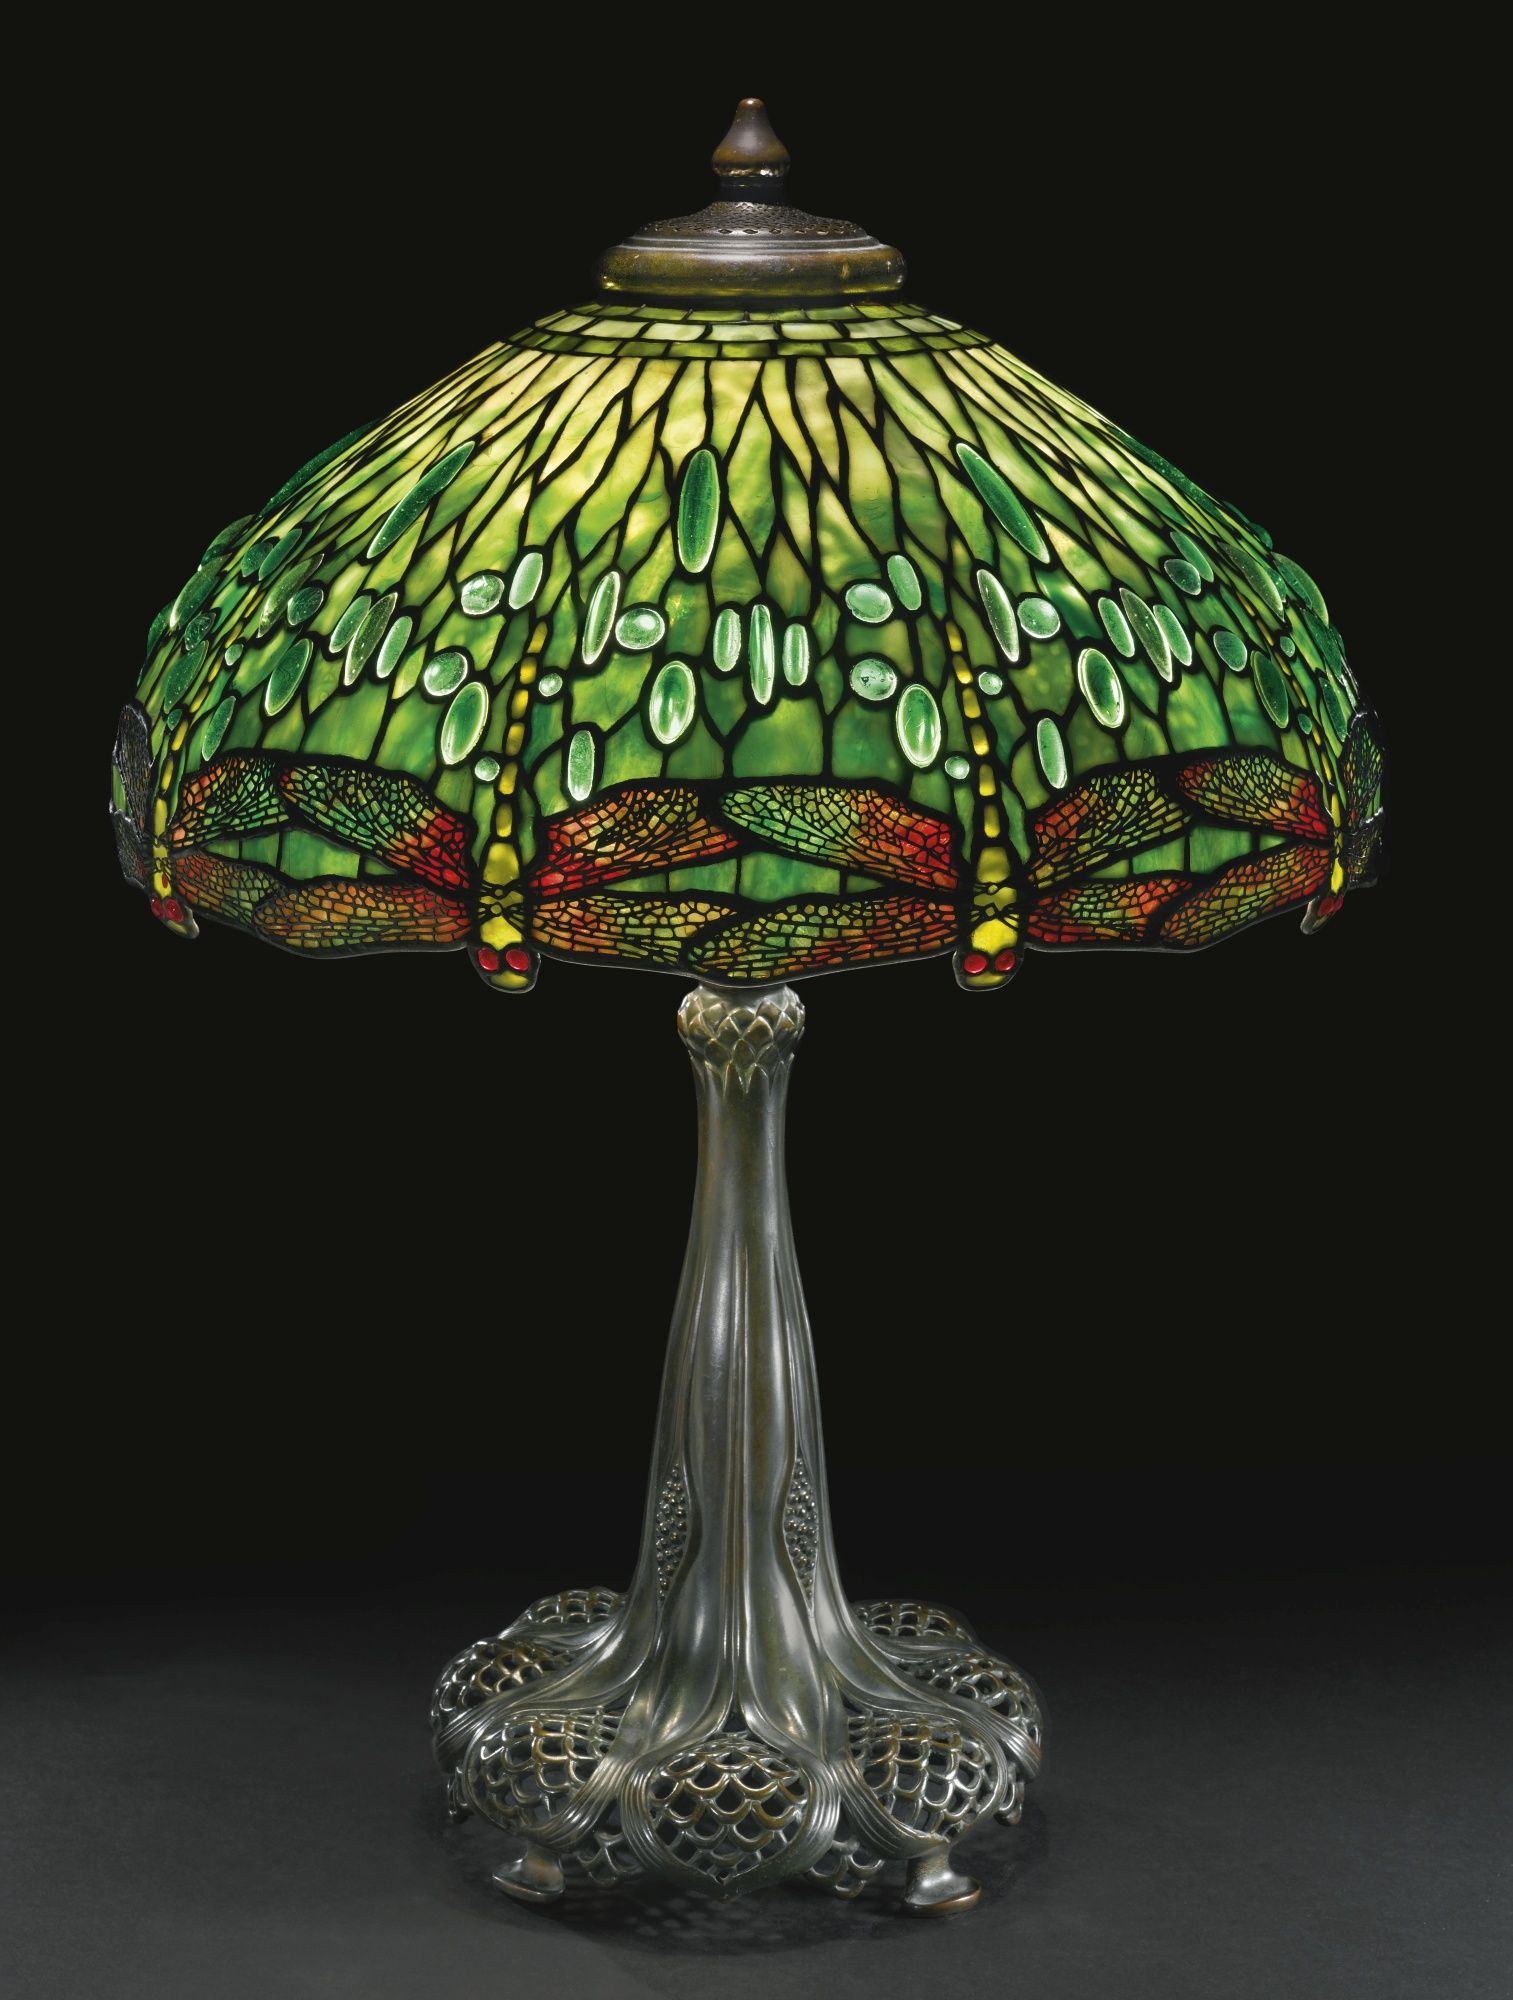 Tiffany Studios Lot Tiffany Lamps Tiffany Style Lamp Stained Glass Table Lamps